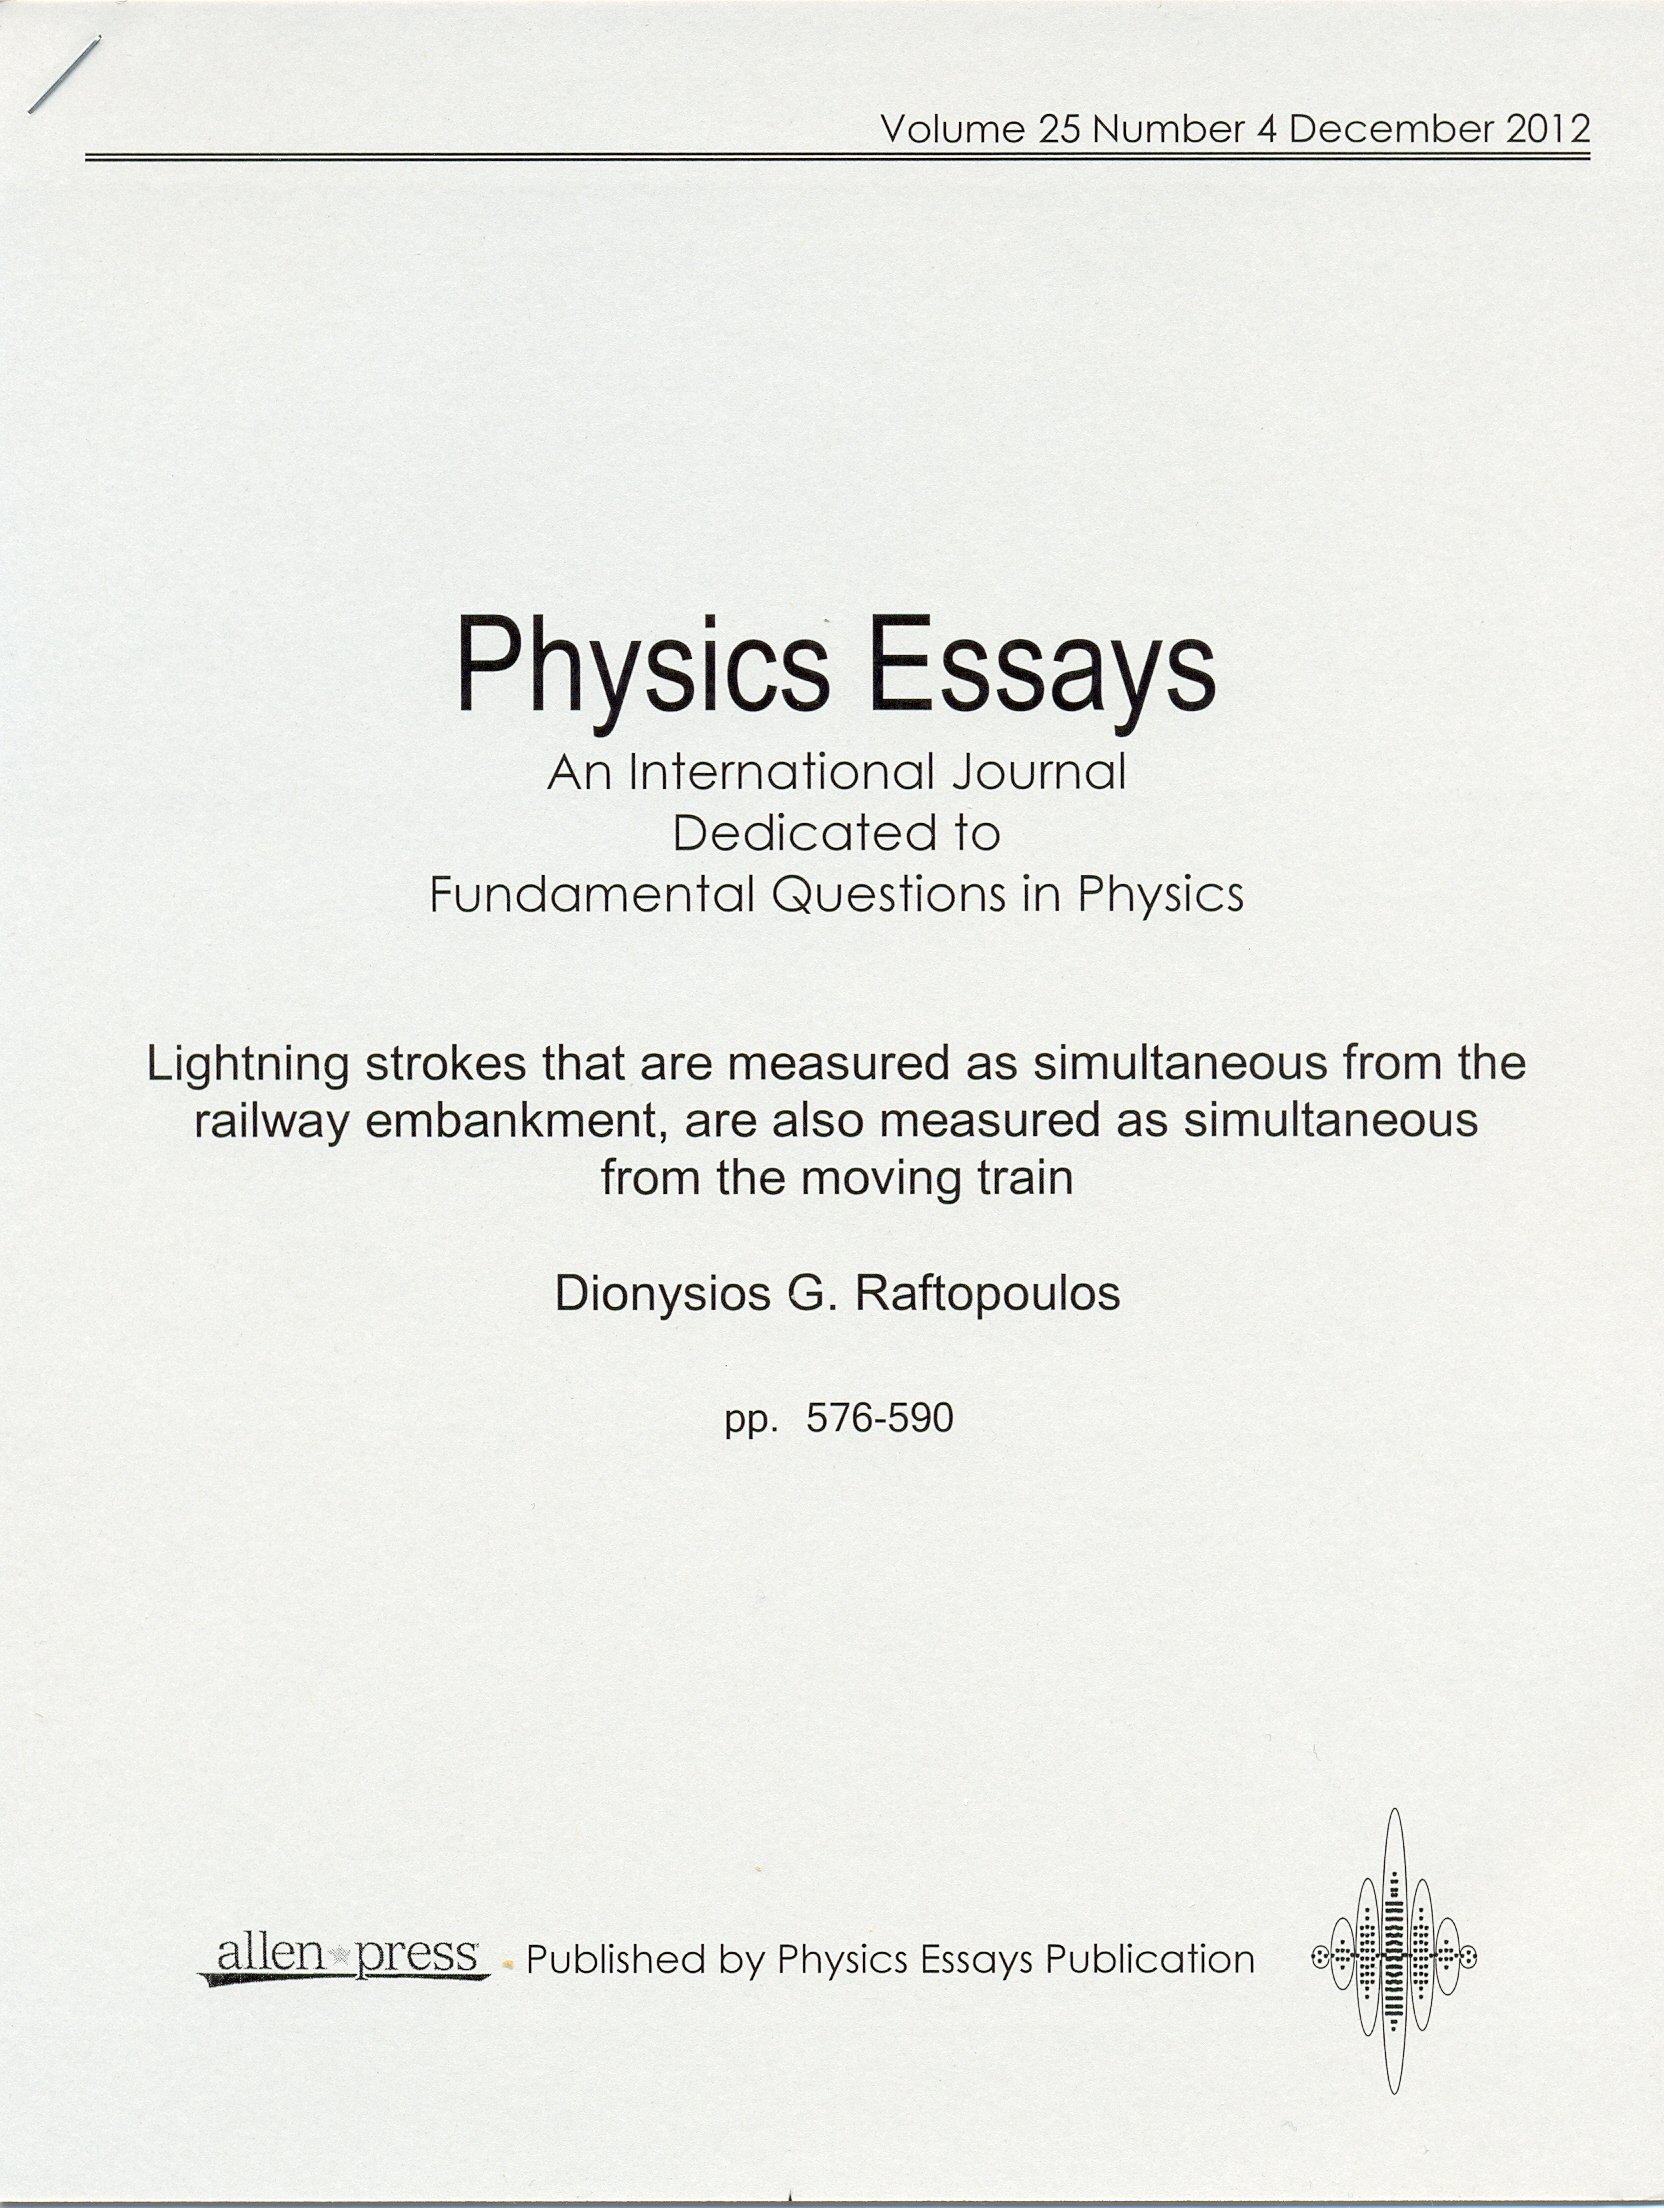 003 Physics Essays Cover202 Essay Rare Extended Topics Examples Wikipedia Crackpot Full